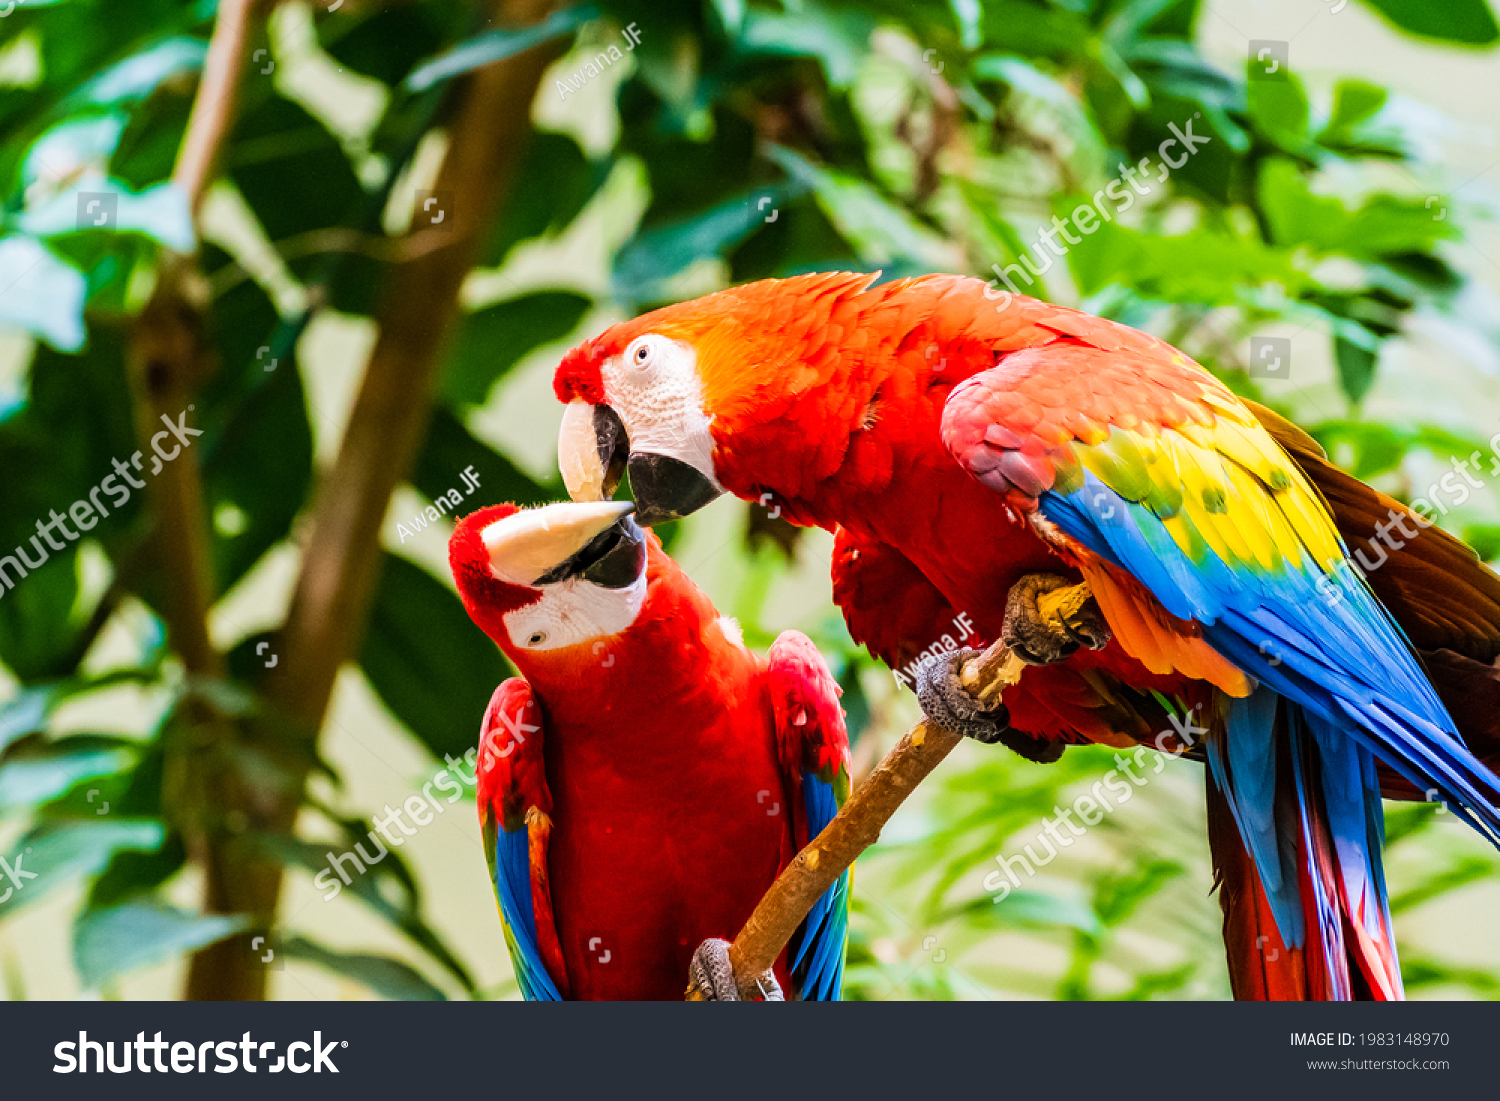 stock-photo-a-cute-pair-of-scarlet-macaw